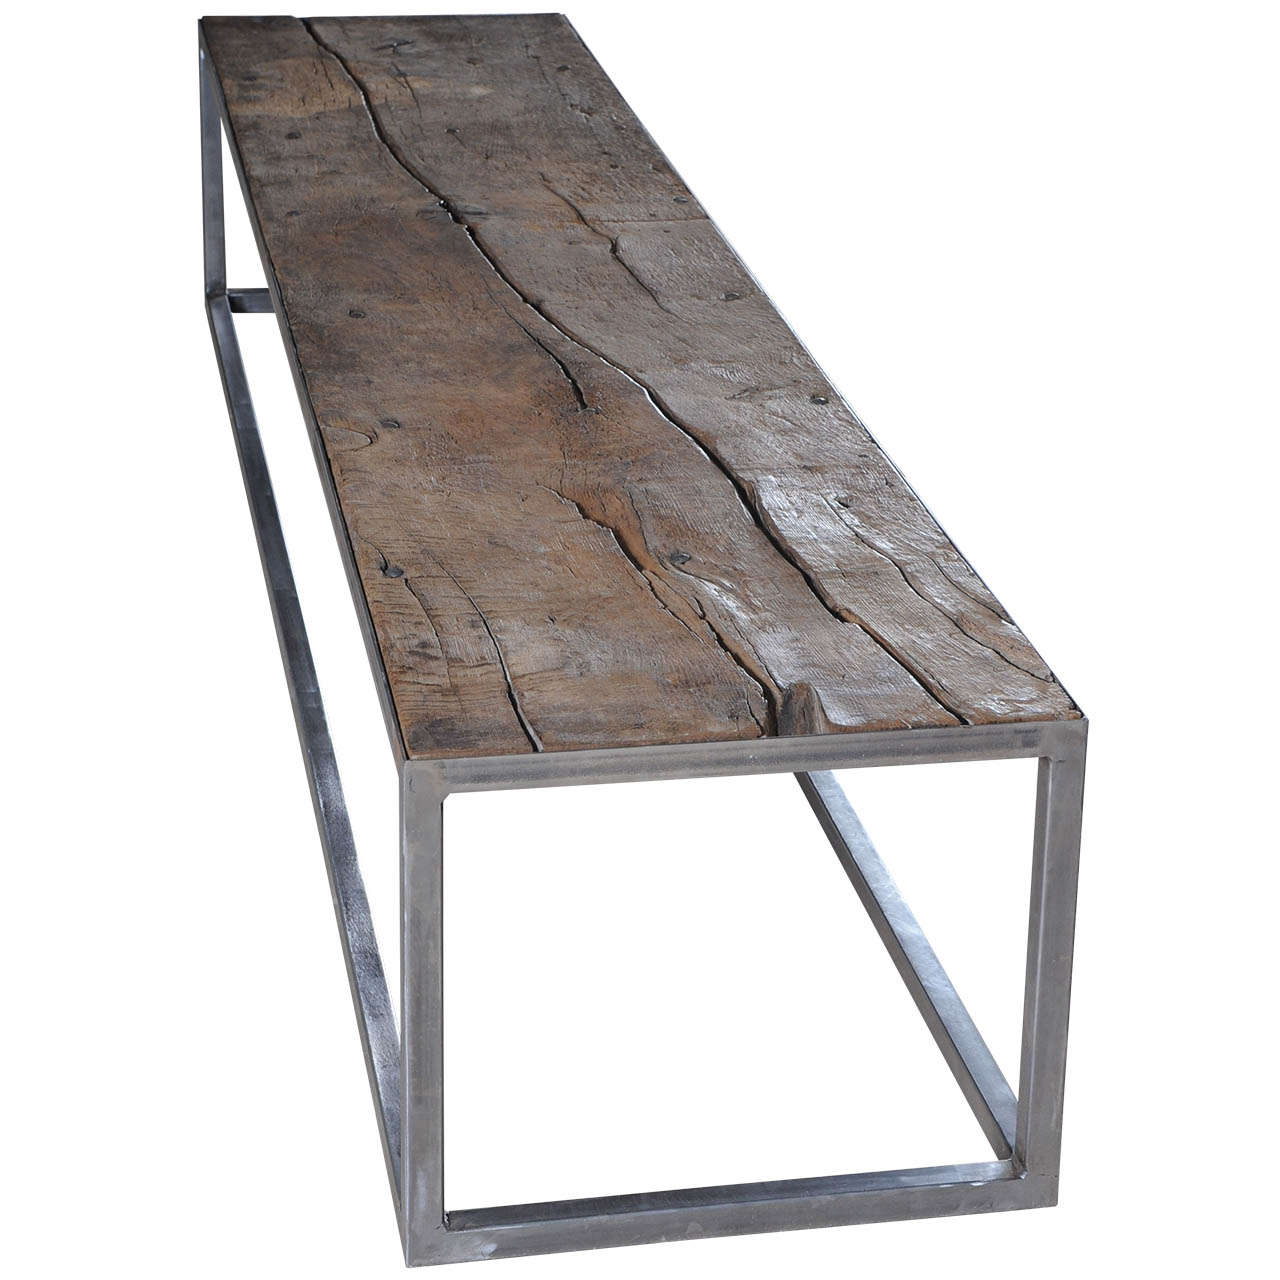 A Coffee Table Made of a 14th Century Dutch Oak Floorboard with  Wrought-Iron Frame